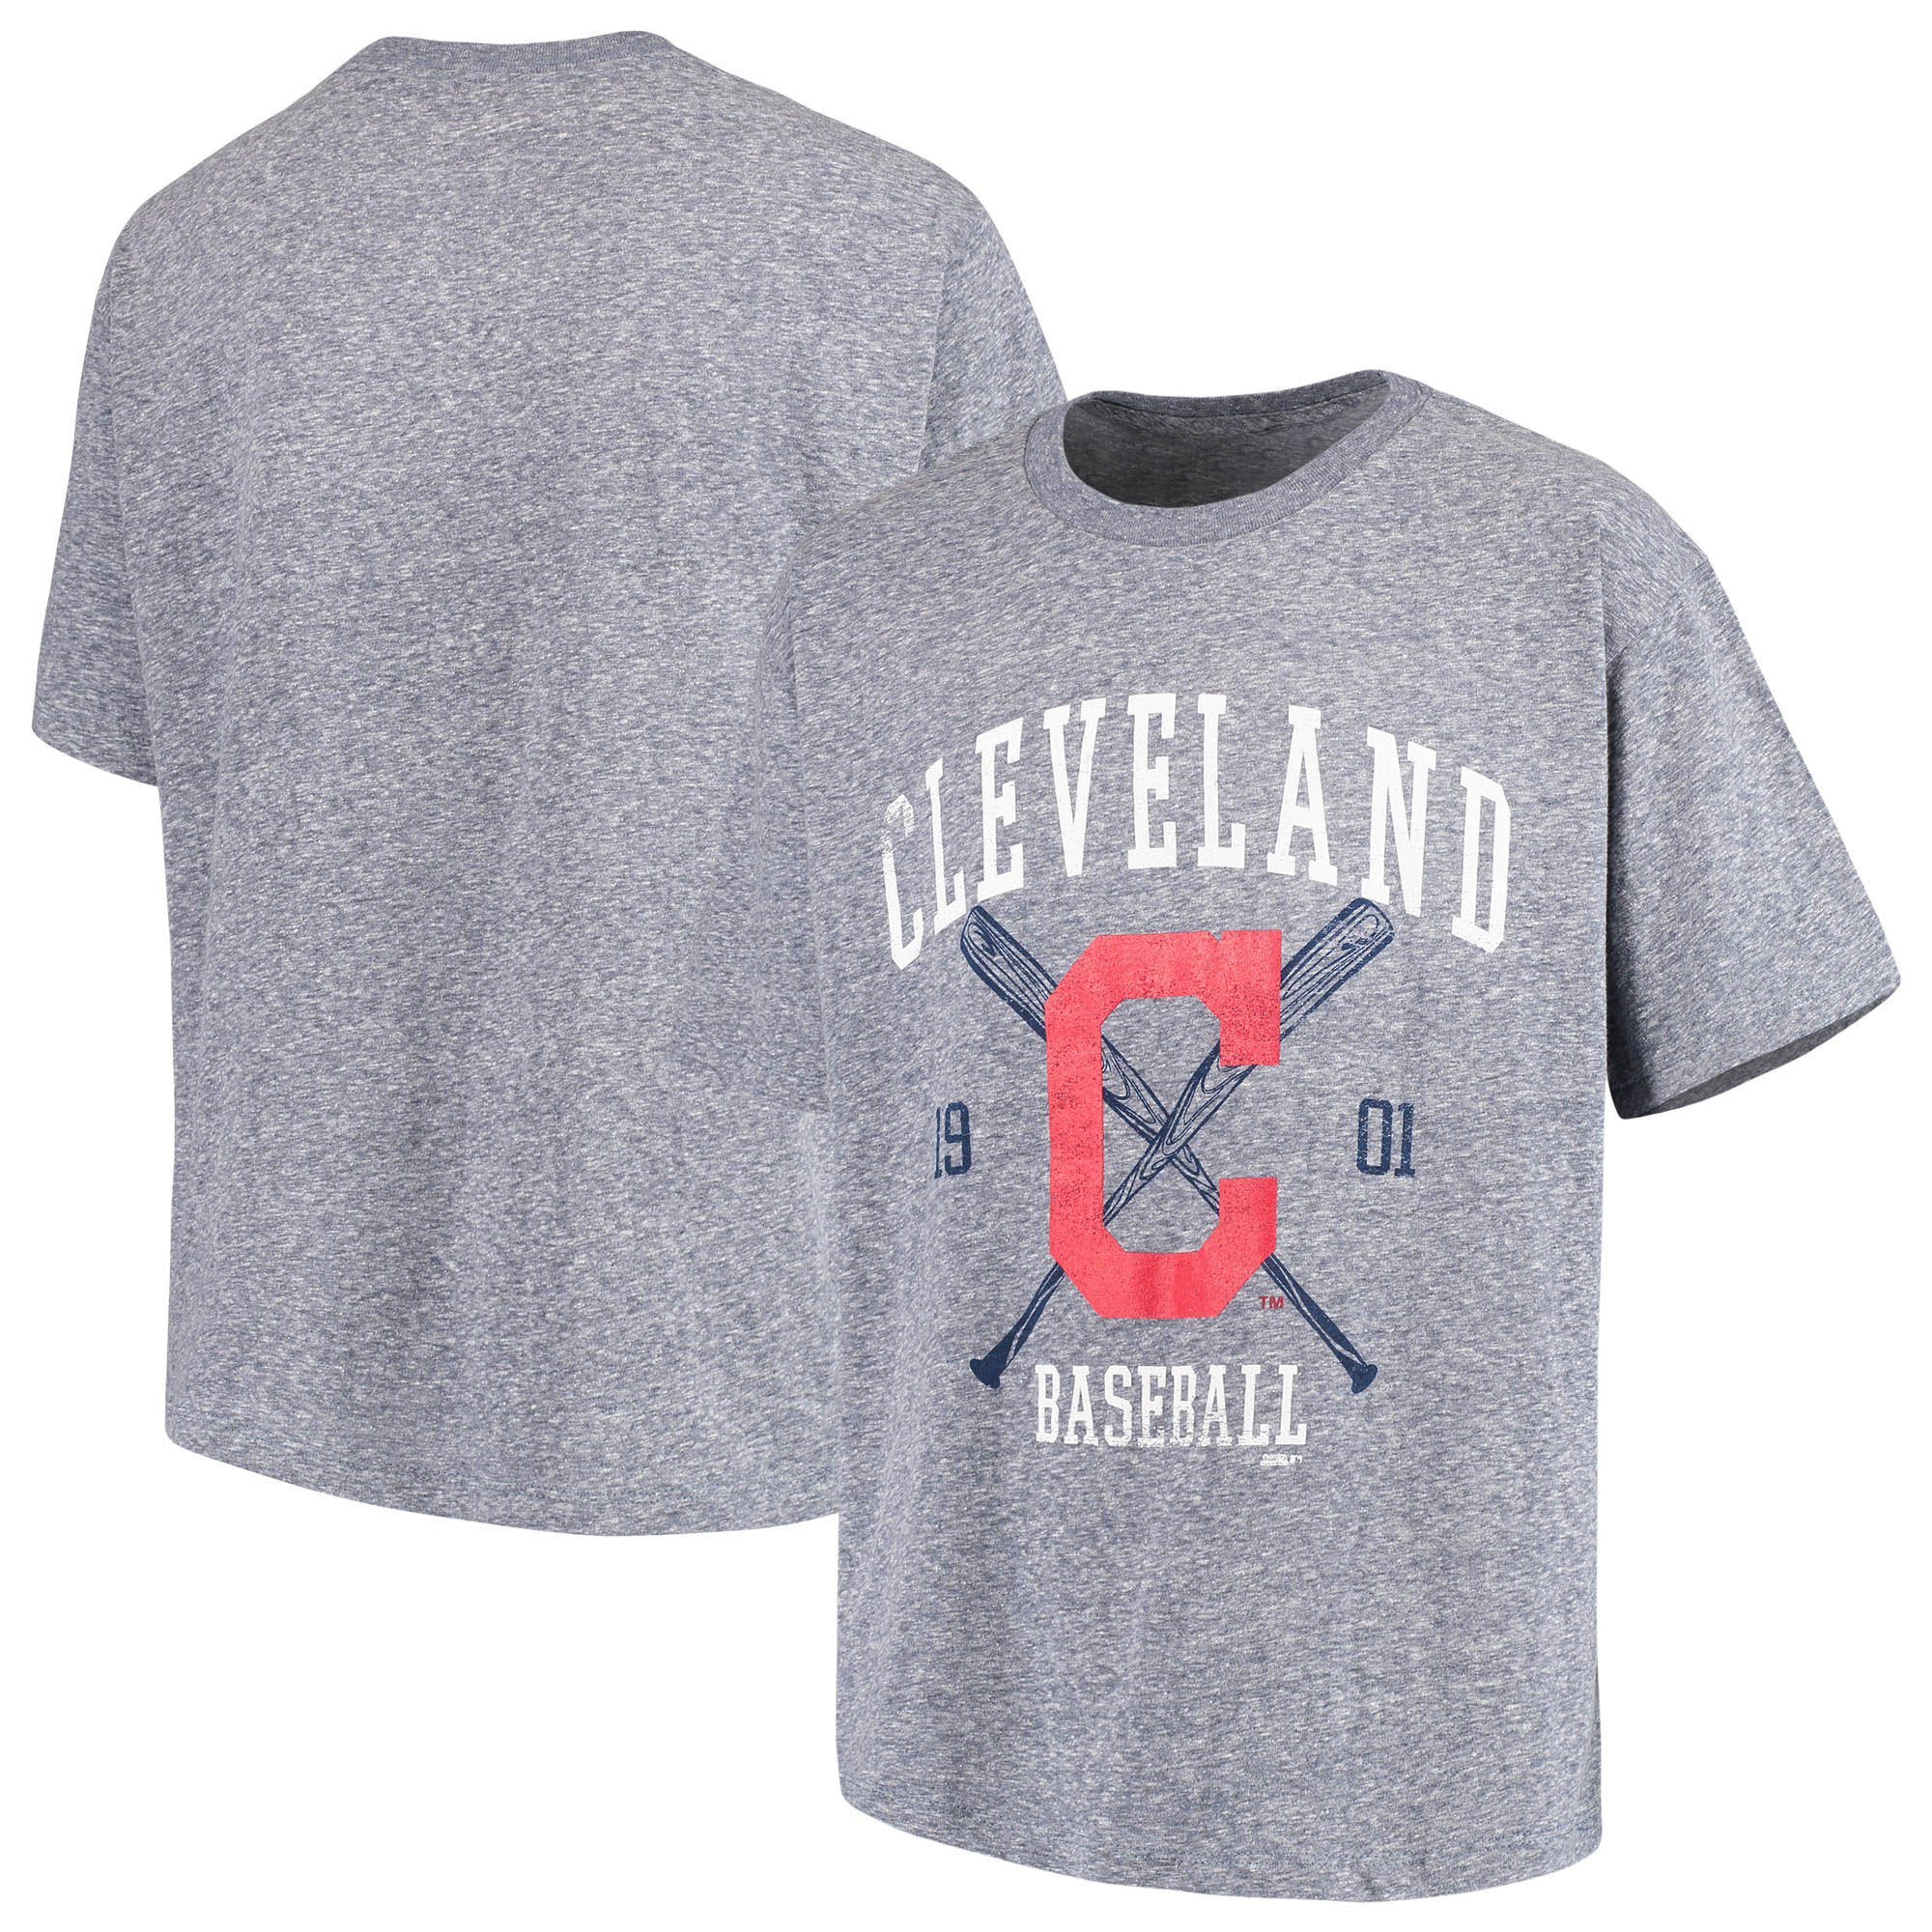 Cleveland Indians Youth Heather T-Shirt - Navy